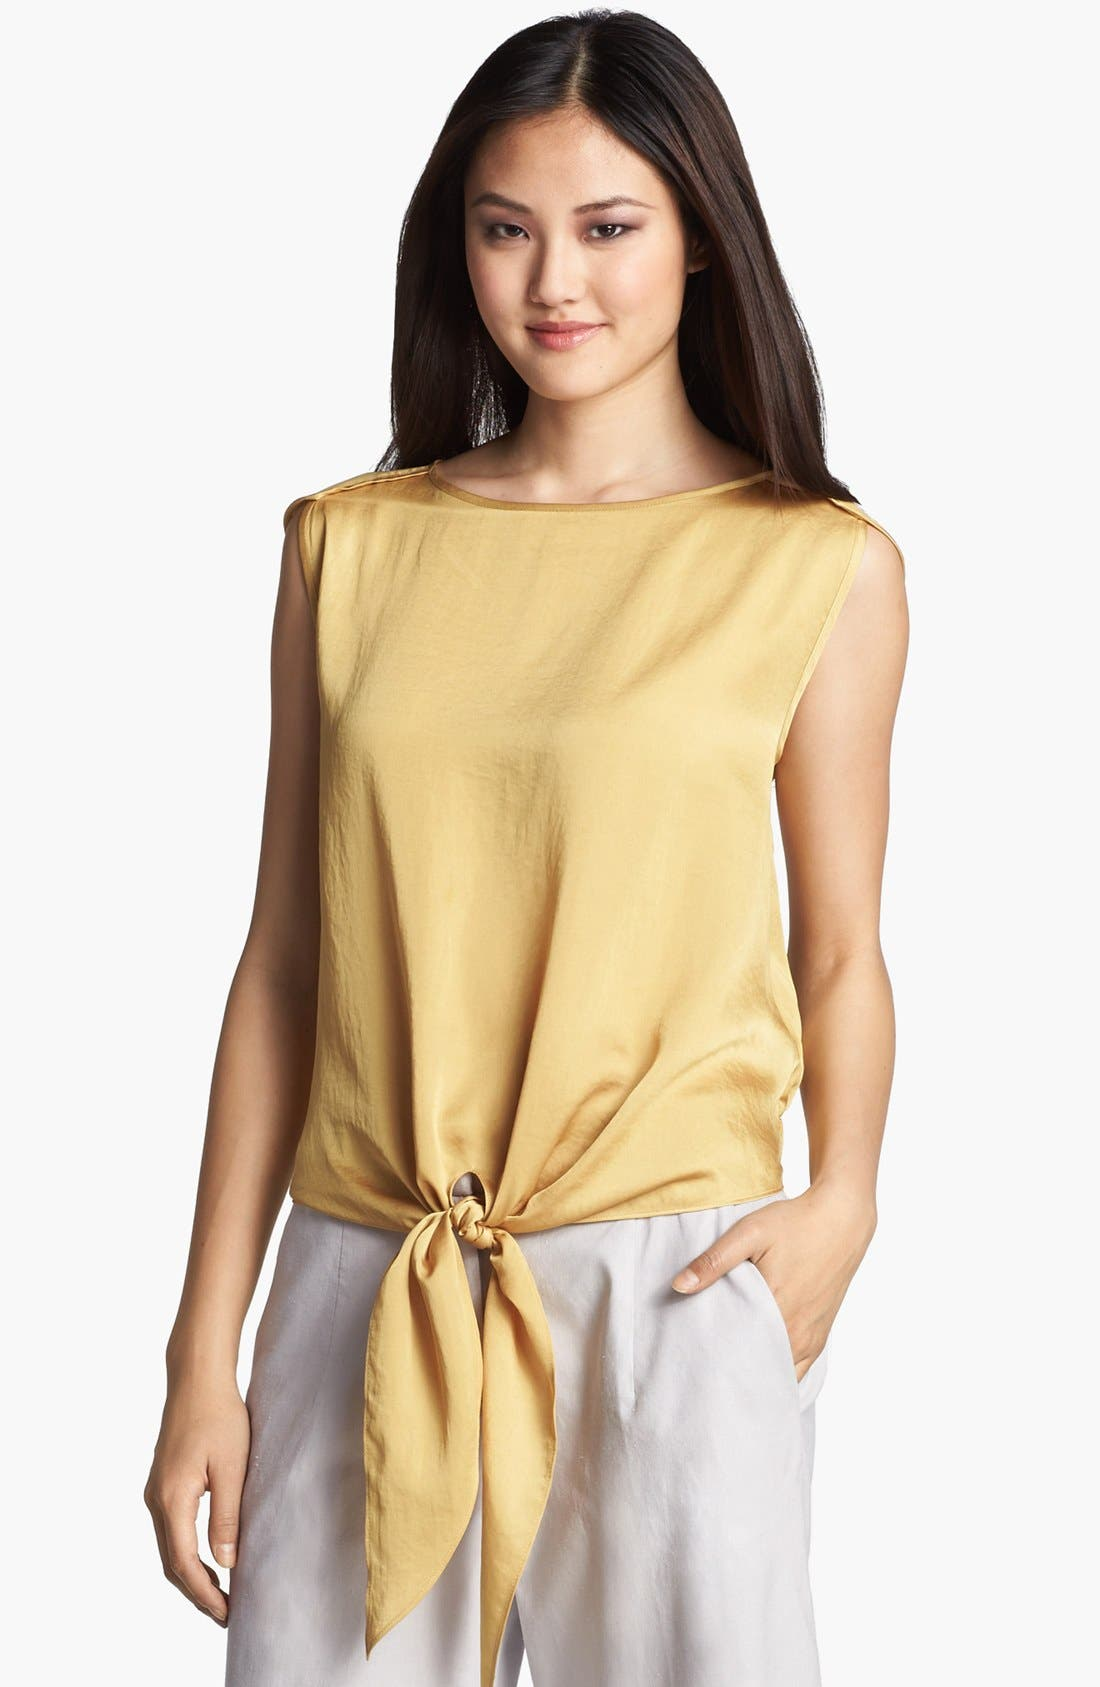 Alternate Image 1 Selected - Kenneth Cole New York 'Sandra' Tie Front Blouse